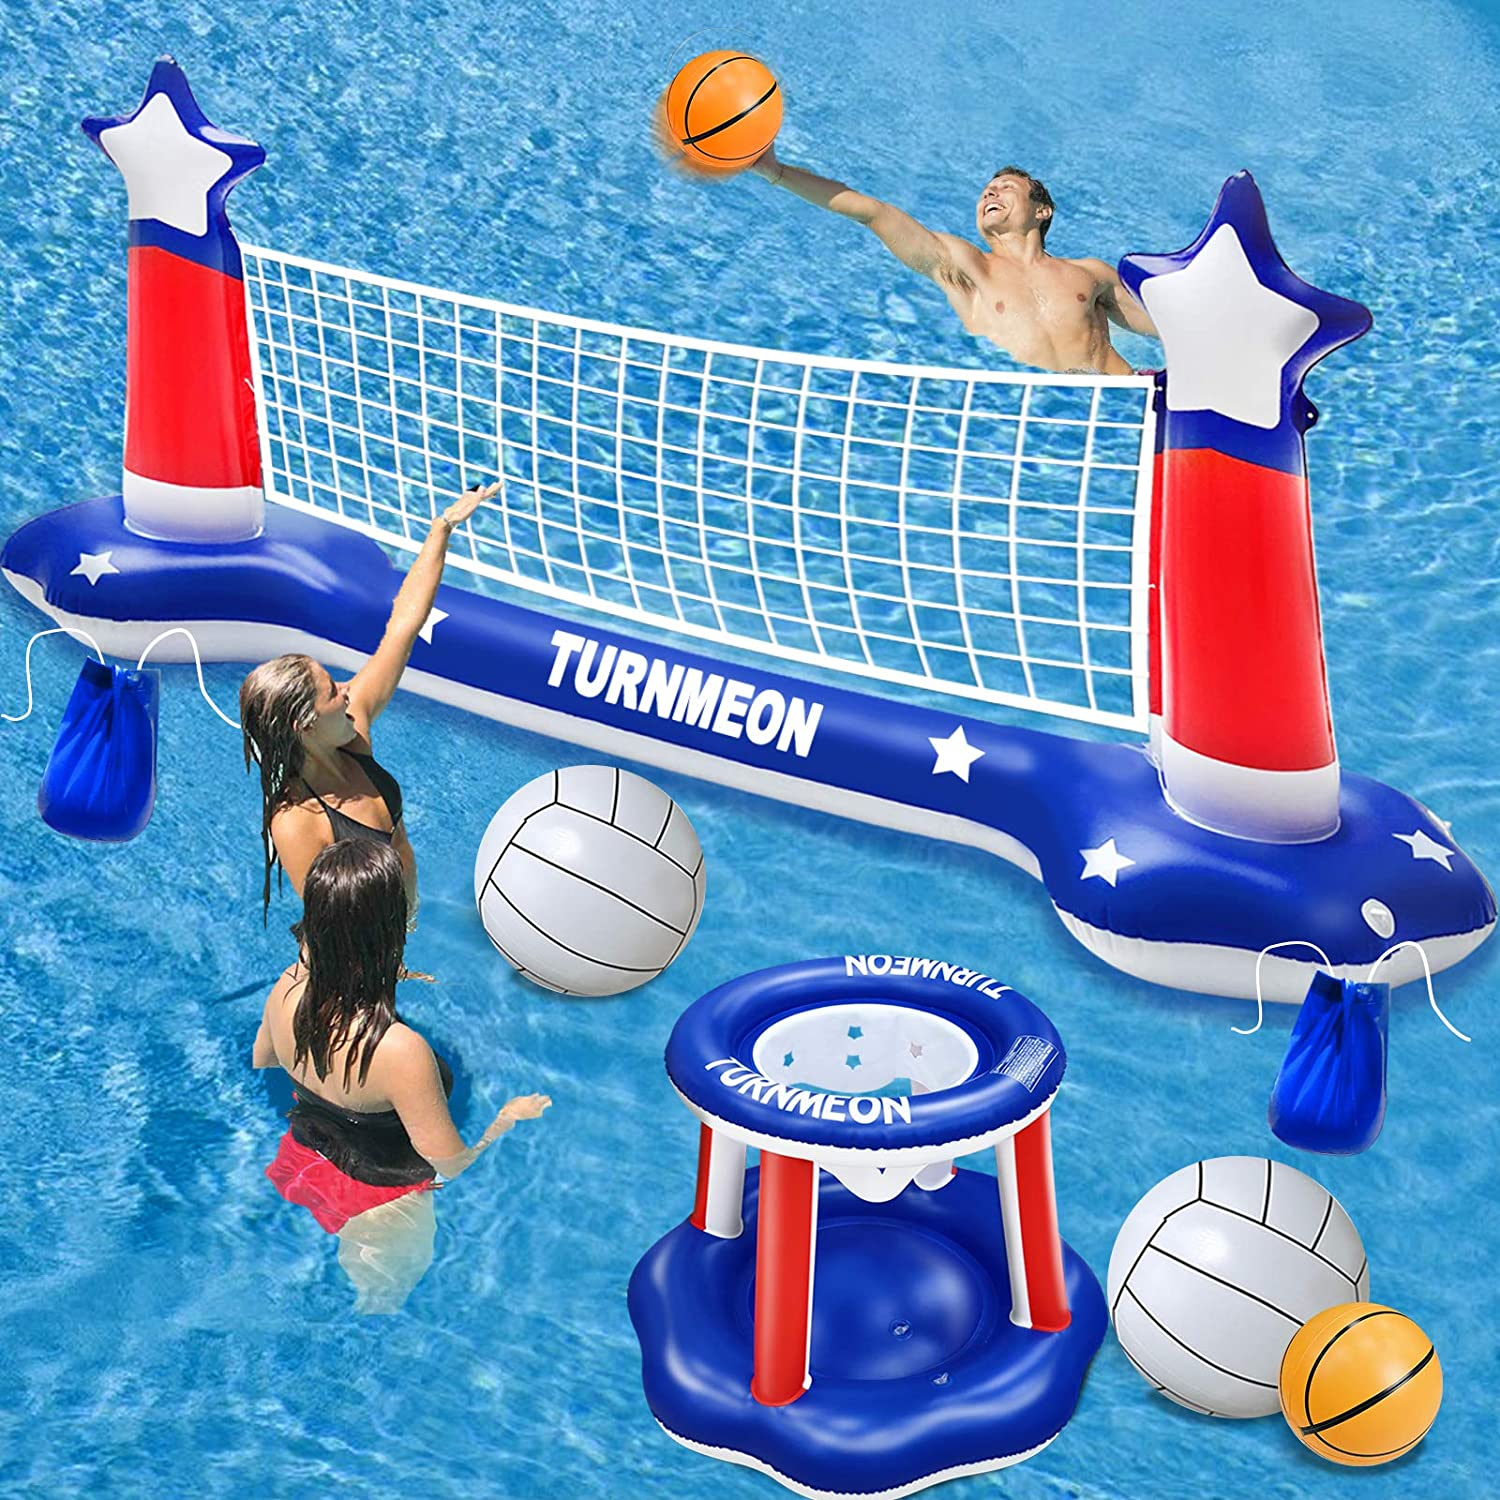 """Large Inflatable Pool Games Volleyball Net & Basketball Hoop Set with 2 Balls Swimming Pool Toys for Adults Kids Pool Floating Water Pool Toys Party Volleyball Net (116""""x46""""x30"""") Hoop (31""""x31""""x24""""): Toys & Games"""